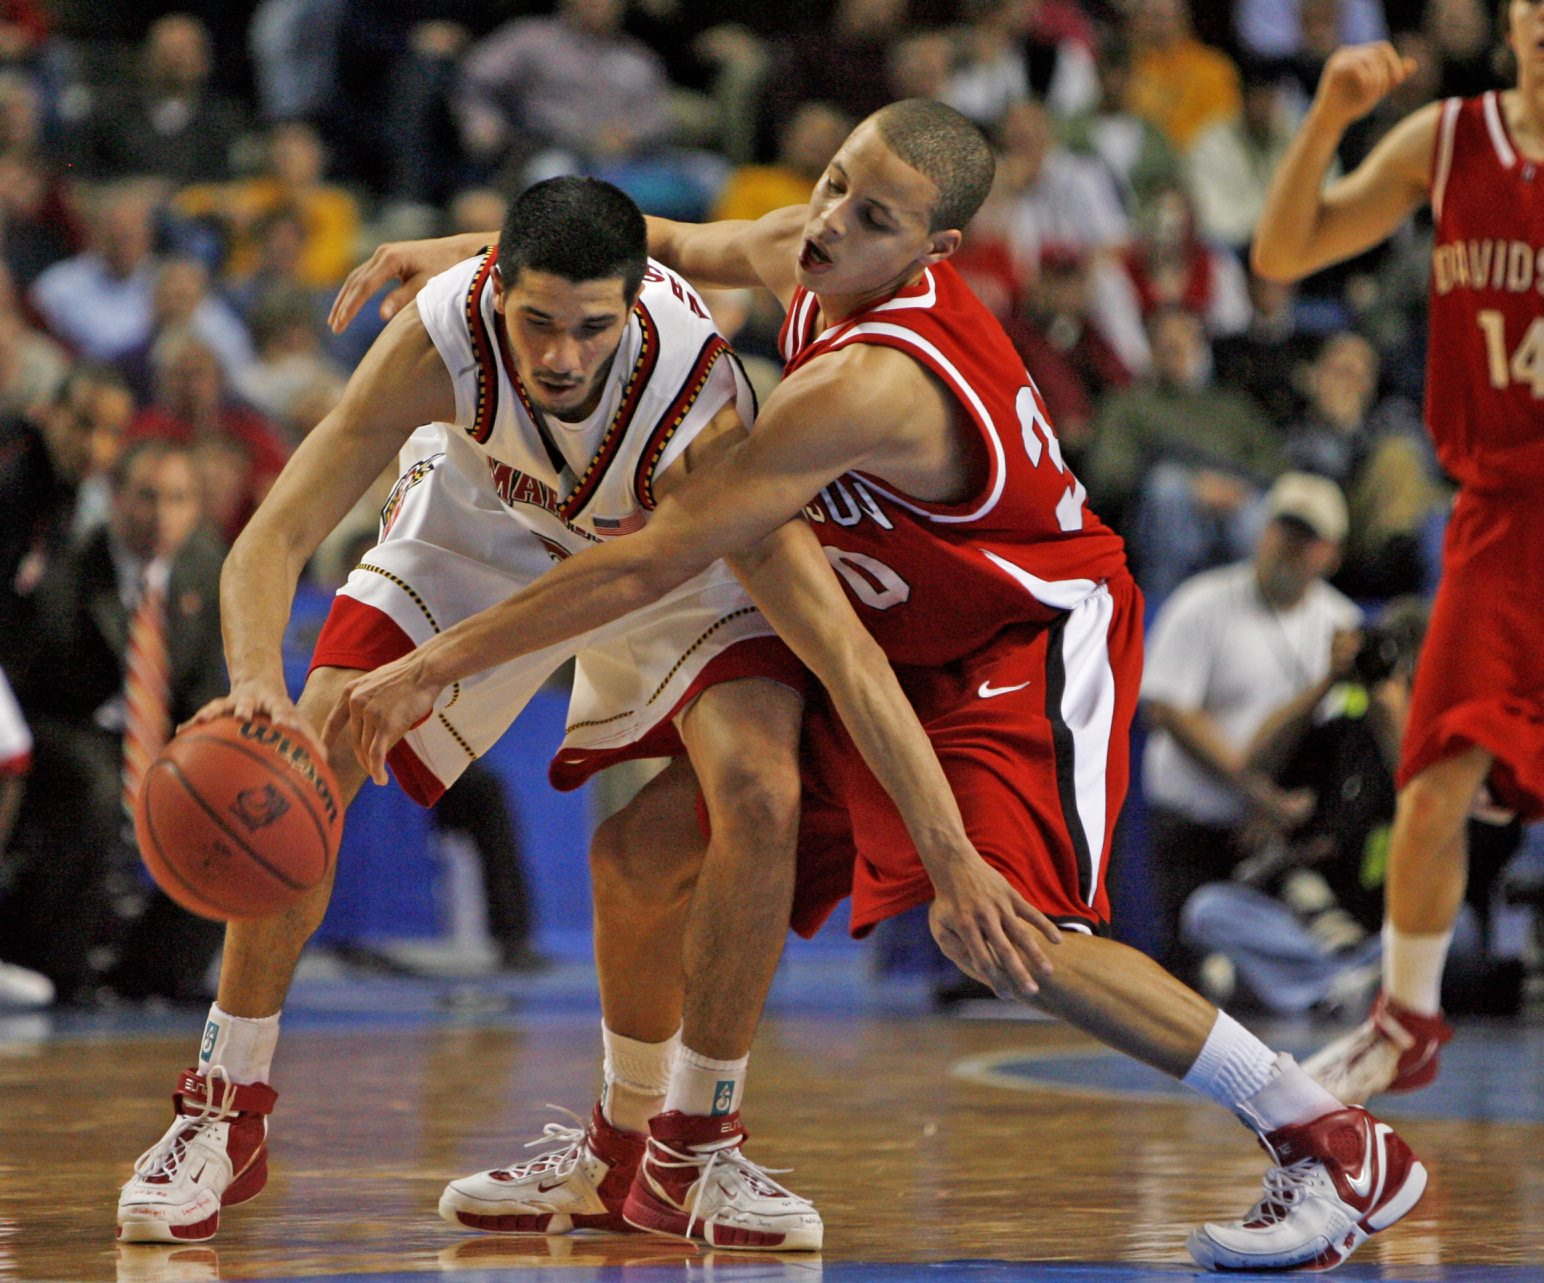 Maryland   Greivis Vasquez  keeps the ball away from  Davidson's Steph Curry. (James P. McCoy/Buffalo News)